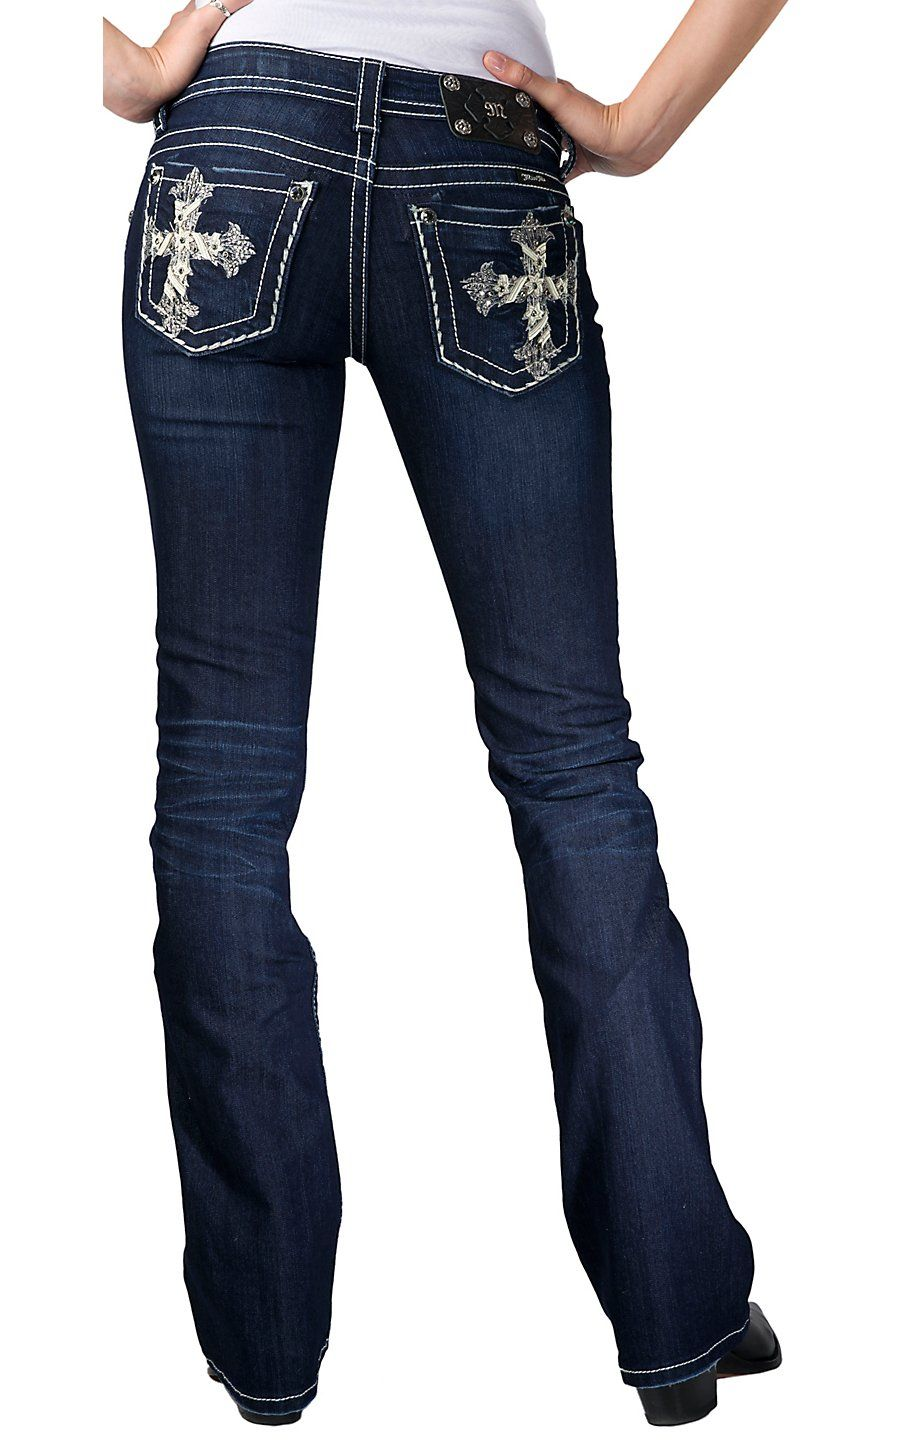 3988a9e452b Miss Me® Ladies Cream Leather & Silver Stitch Cross Open Pocket Boot Cut  Jean | Cavender's Boot City I love these jeans I just order them